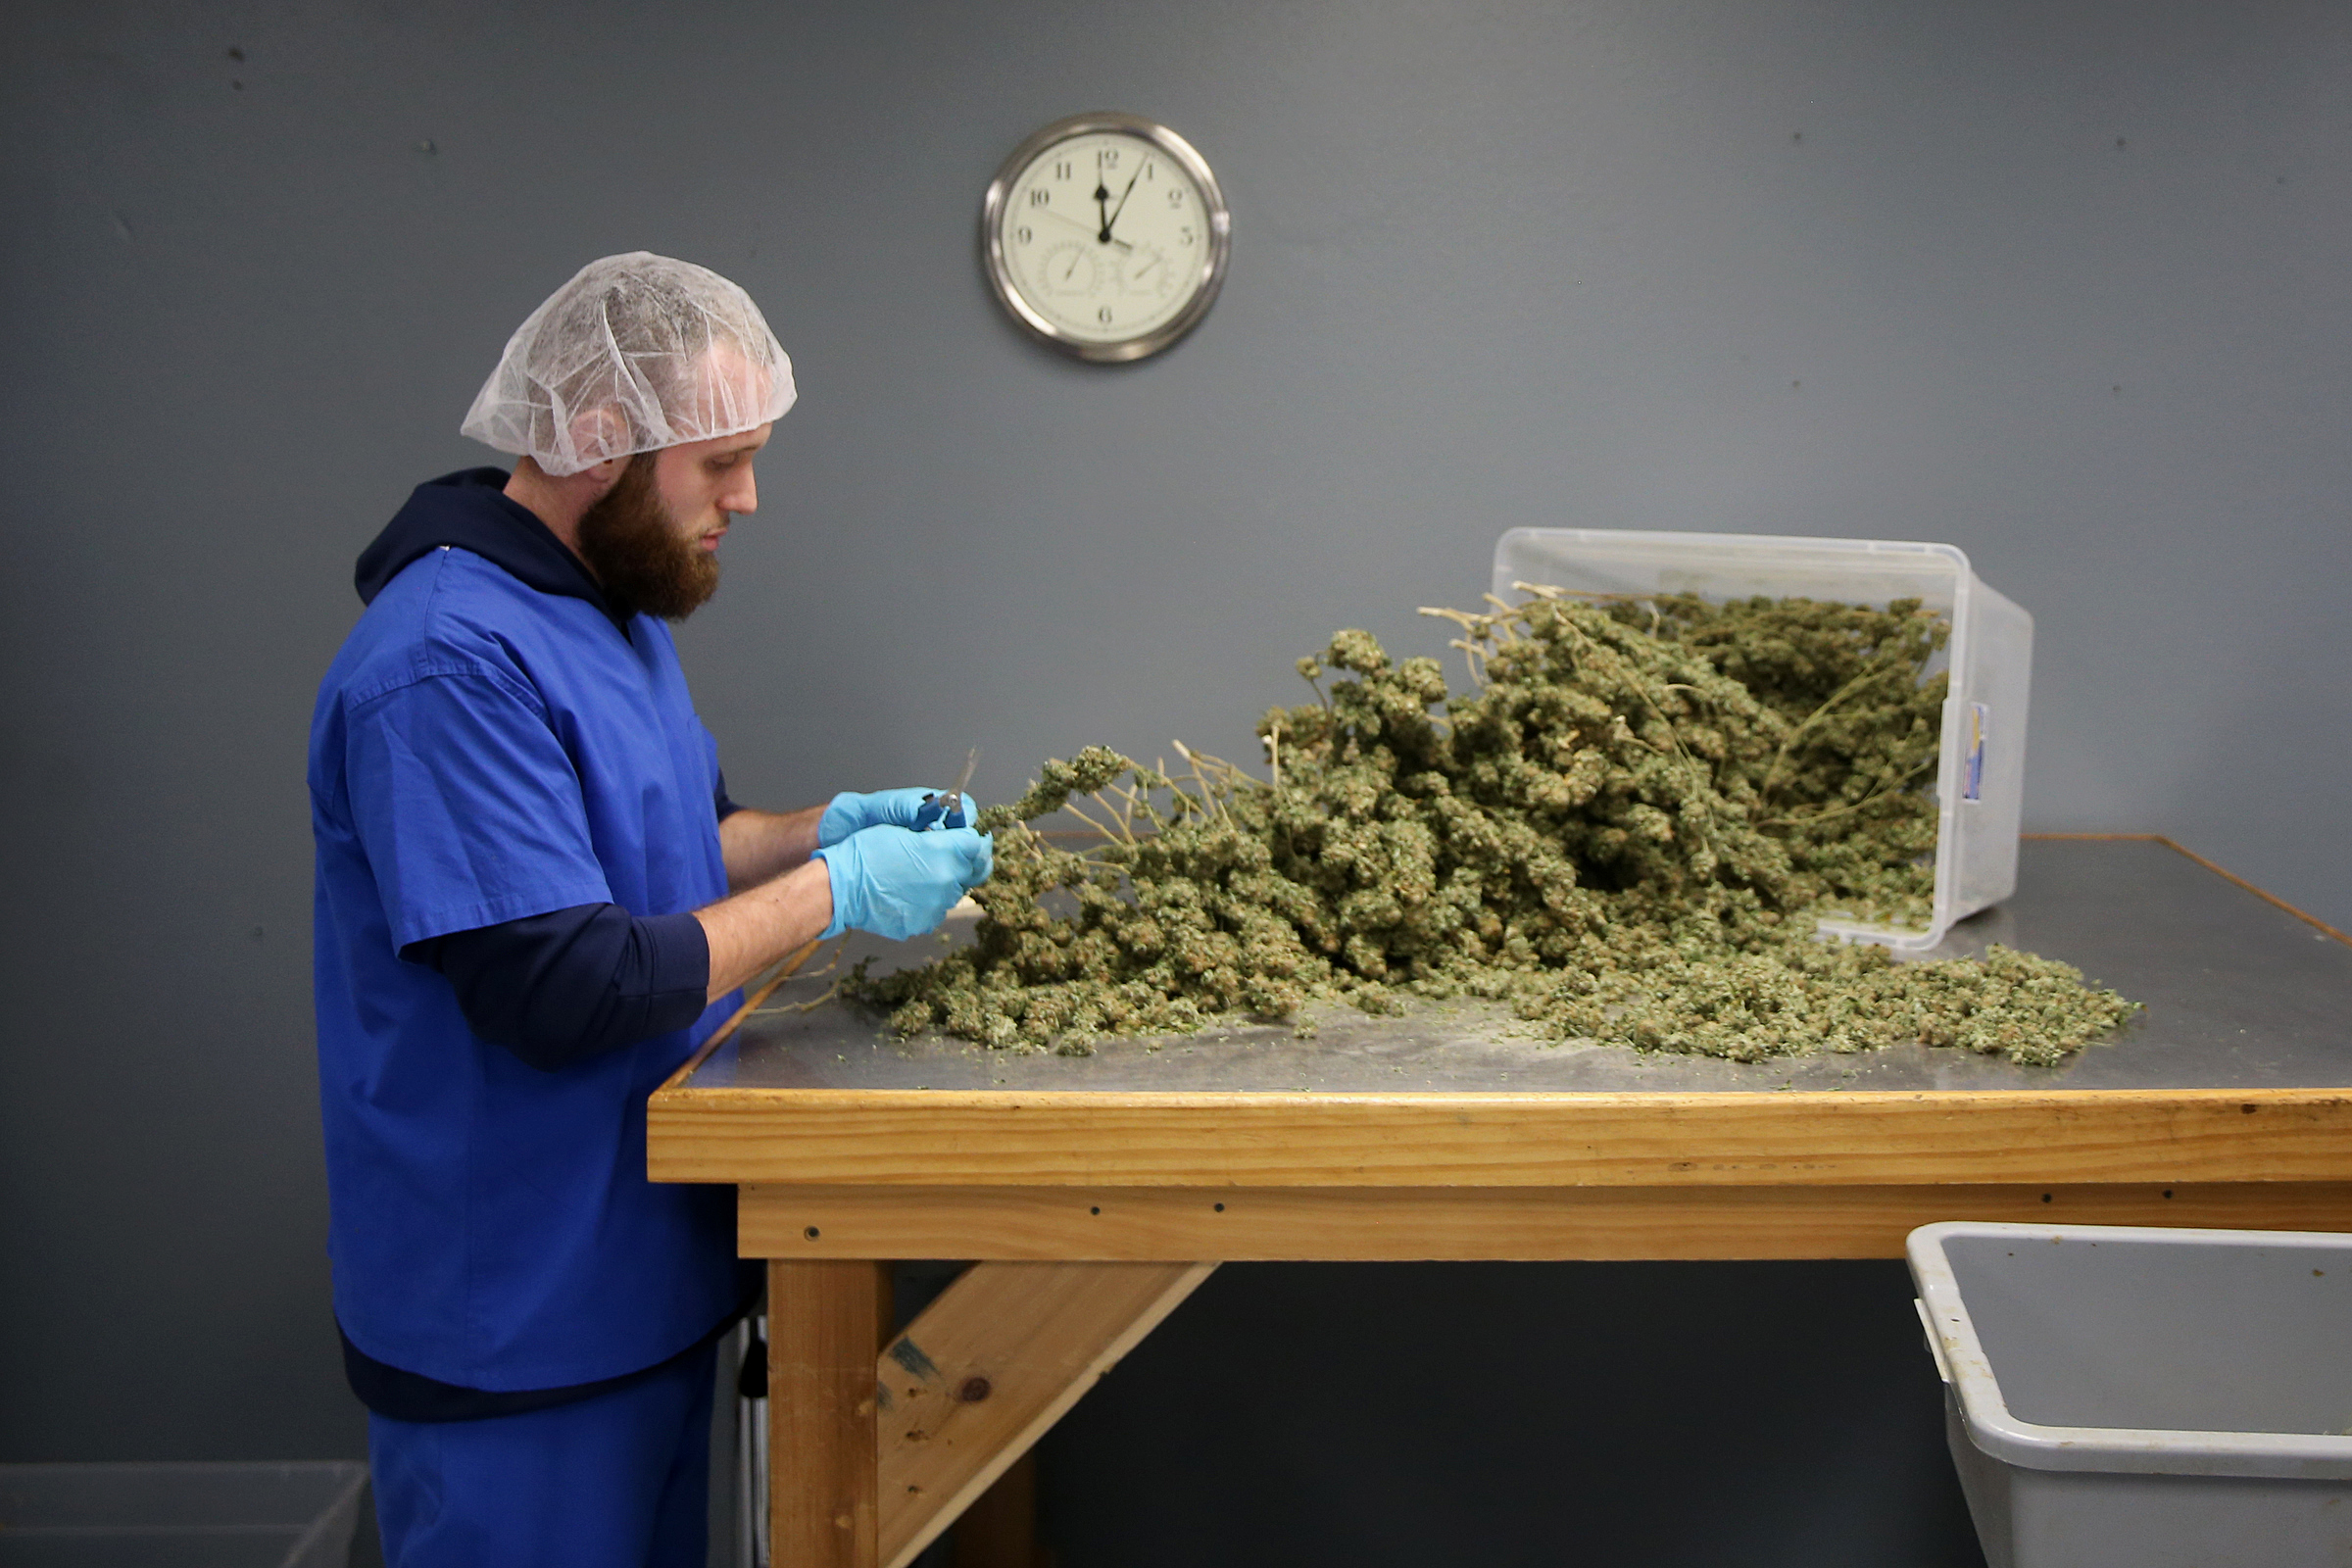 Assistant grower Joe Winkler de-stems marijuana buds in the processing room at the Compassionate Care Foundation medical marijuana dispensary and cutivation center in Egg Harbor Township, N.J., on Wednesday, June 6, 2018. The foundation hopes to open additional dispensaries in South Jersey and also plans to convert a former greenhouse in Sewell, N.J., into another cultivation facility.